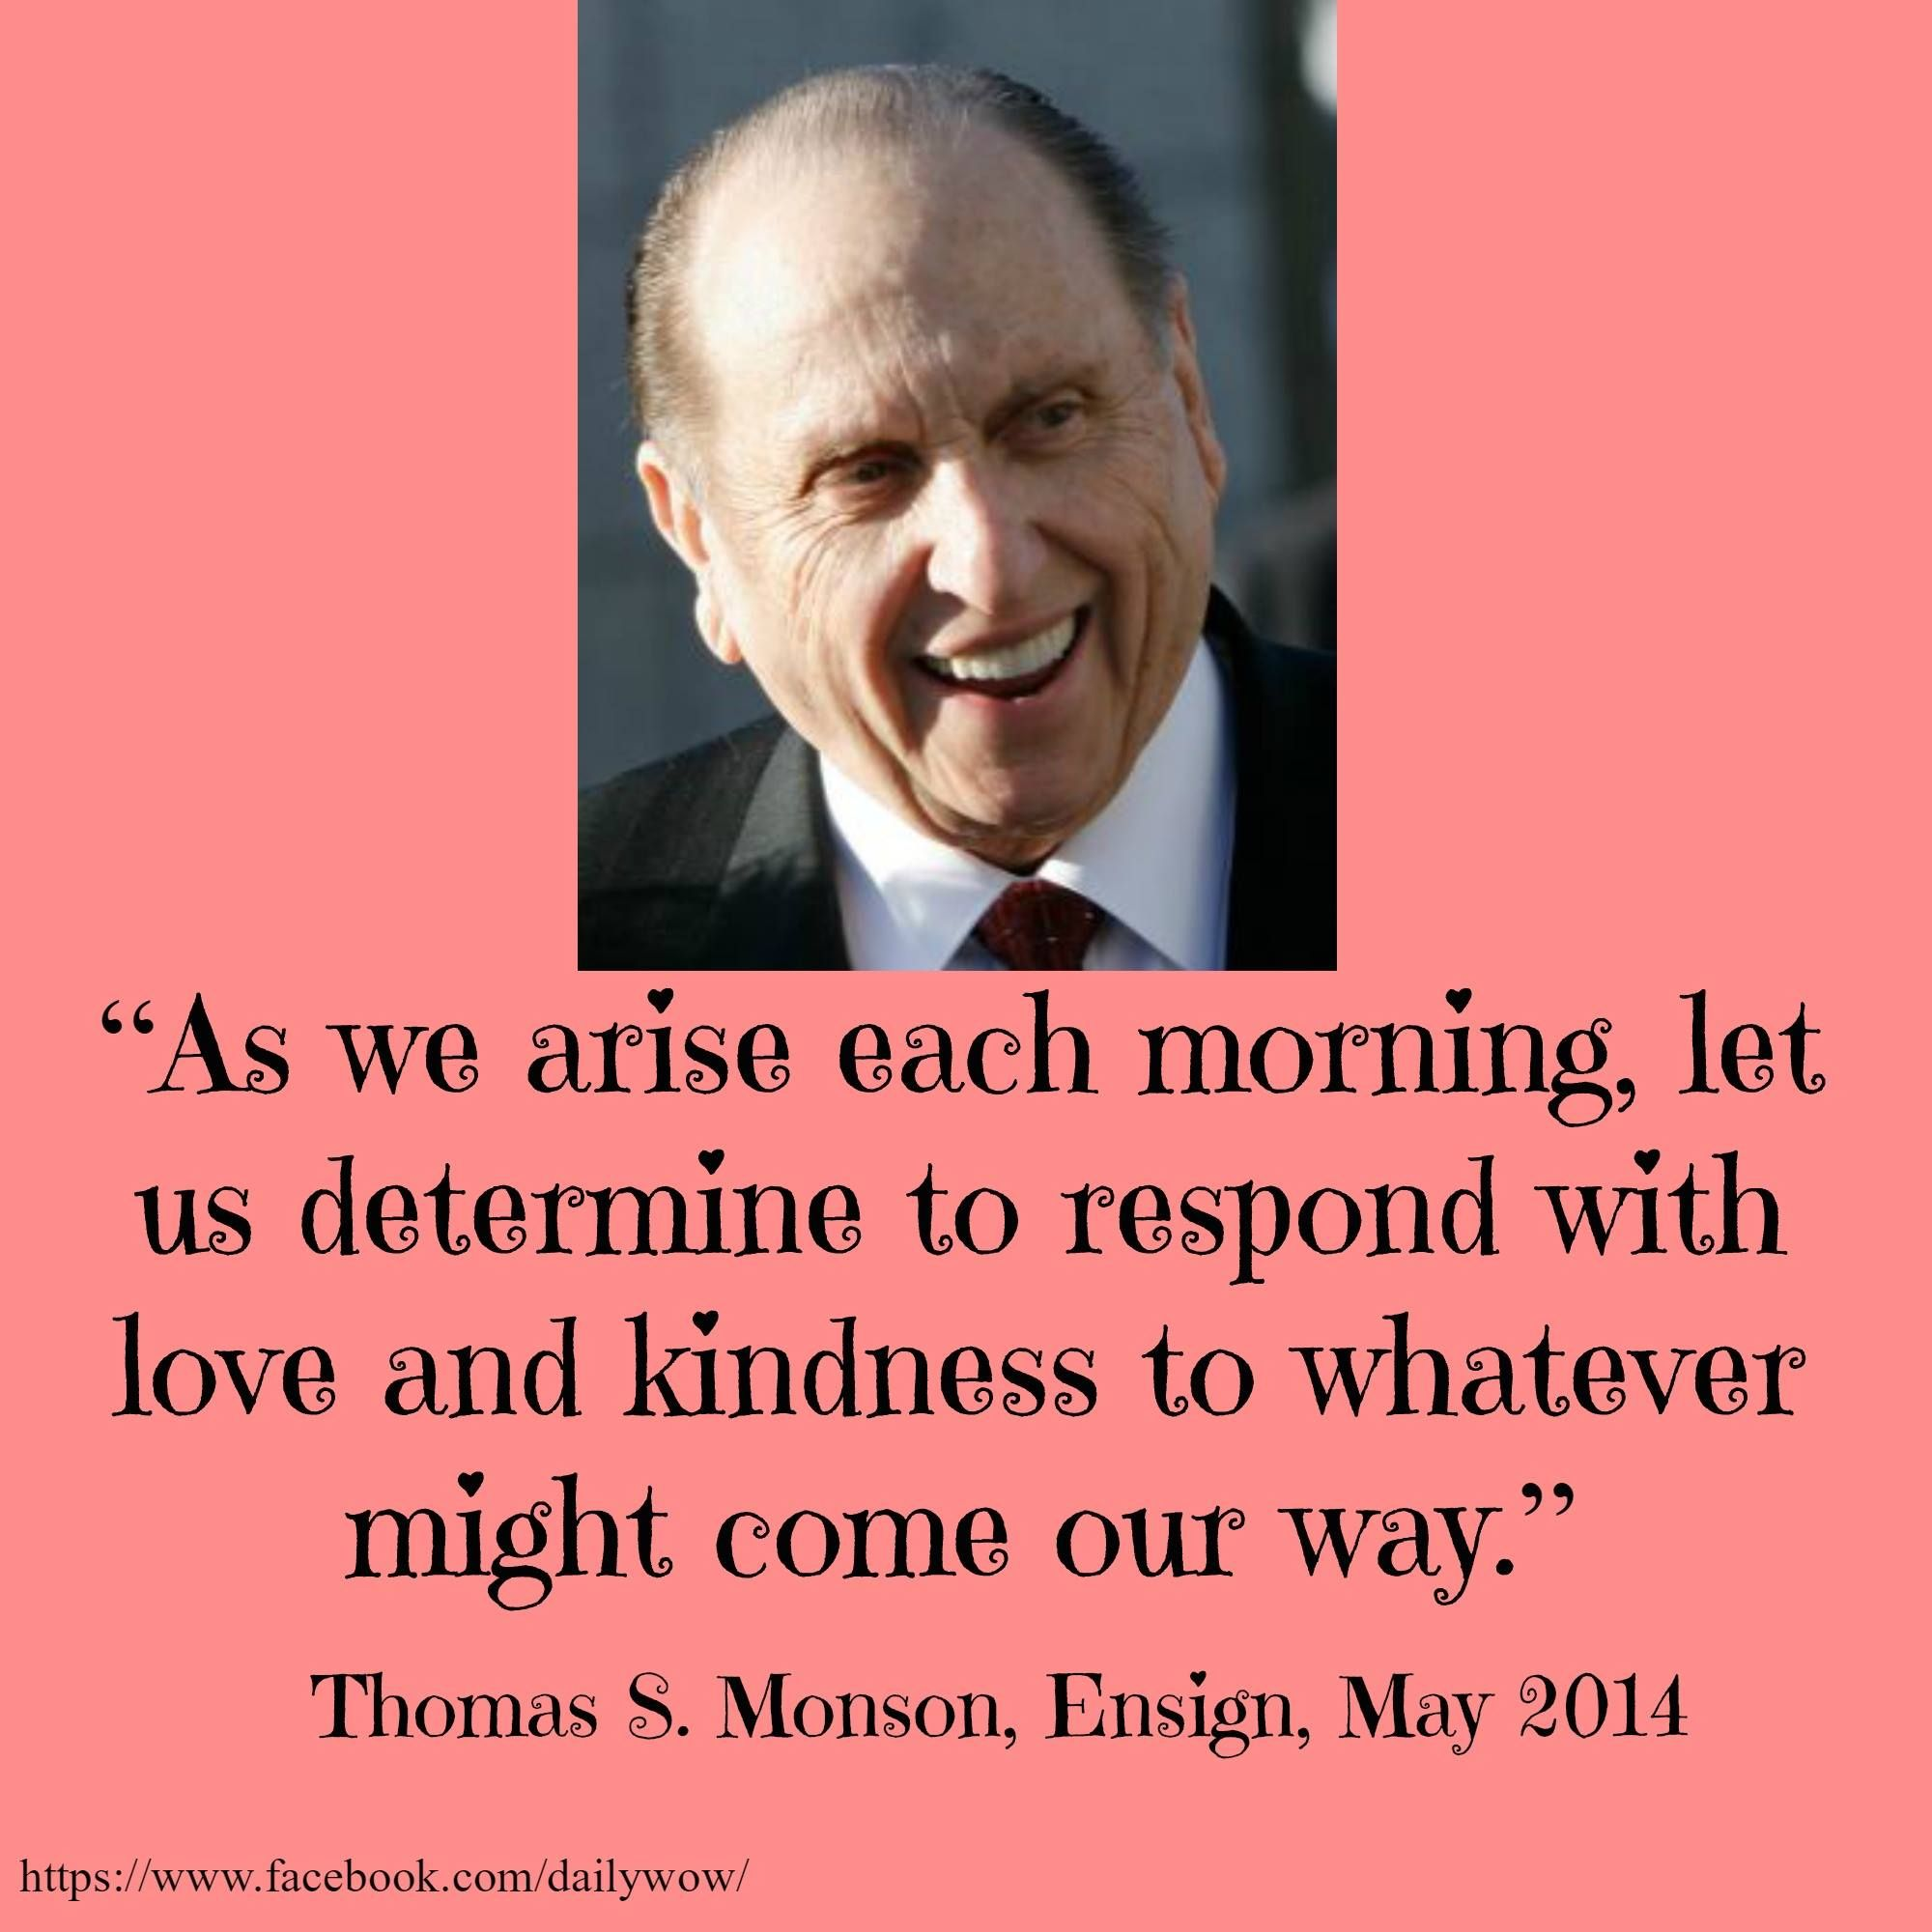 President Monson Eulogized As Thousands Attend Funeral Services